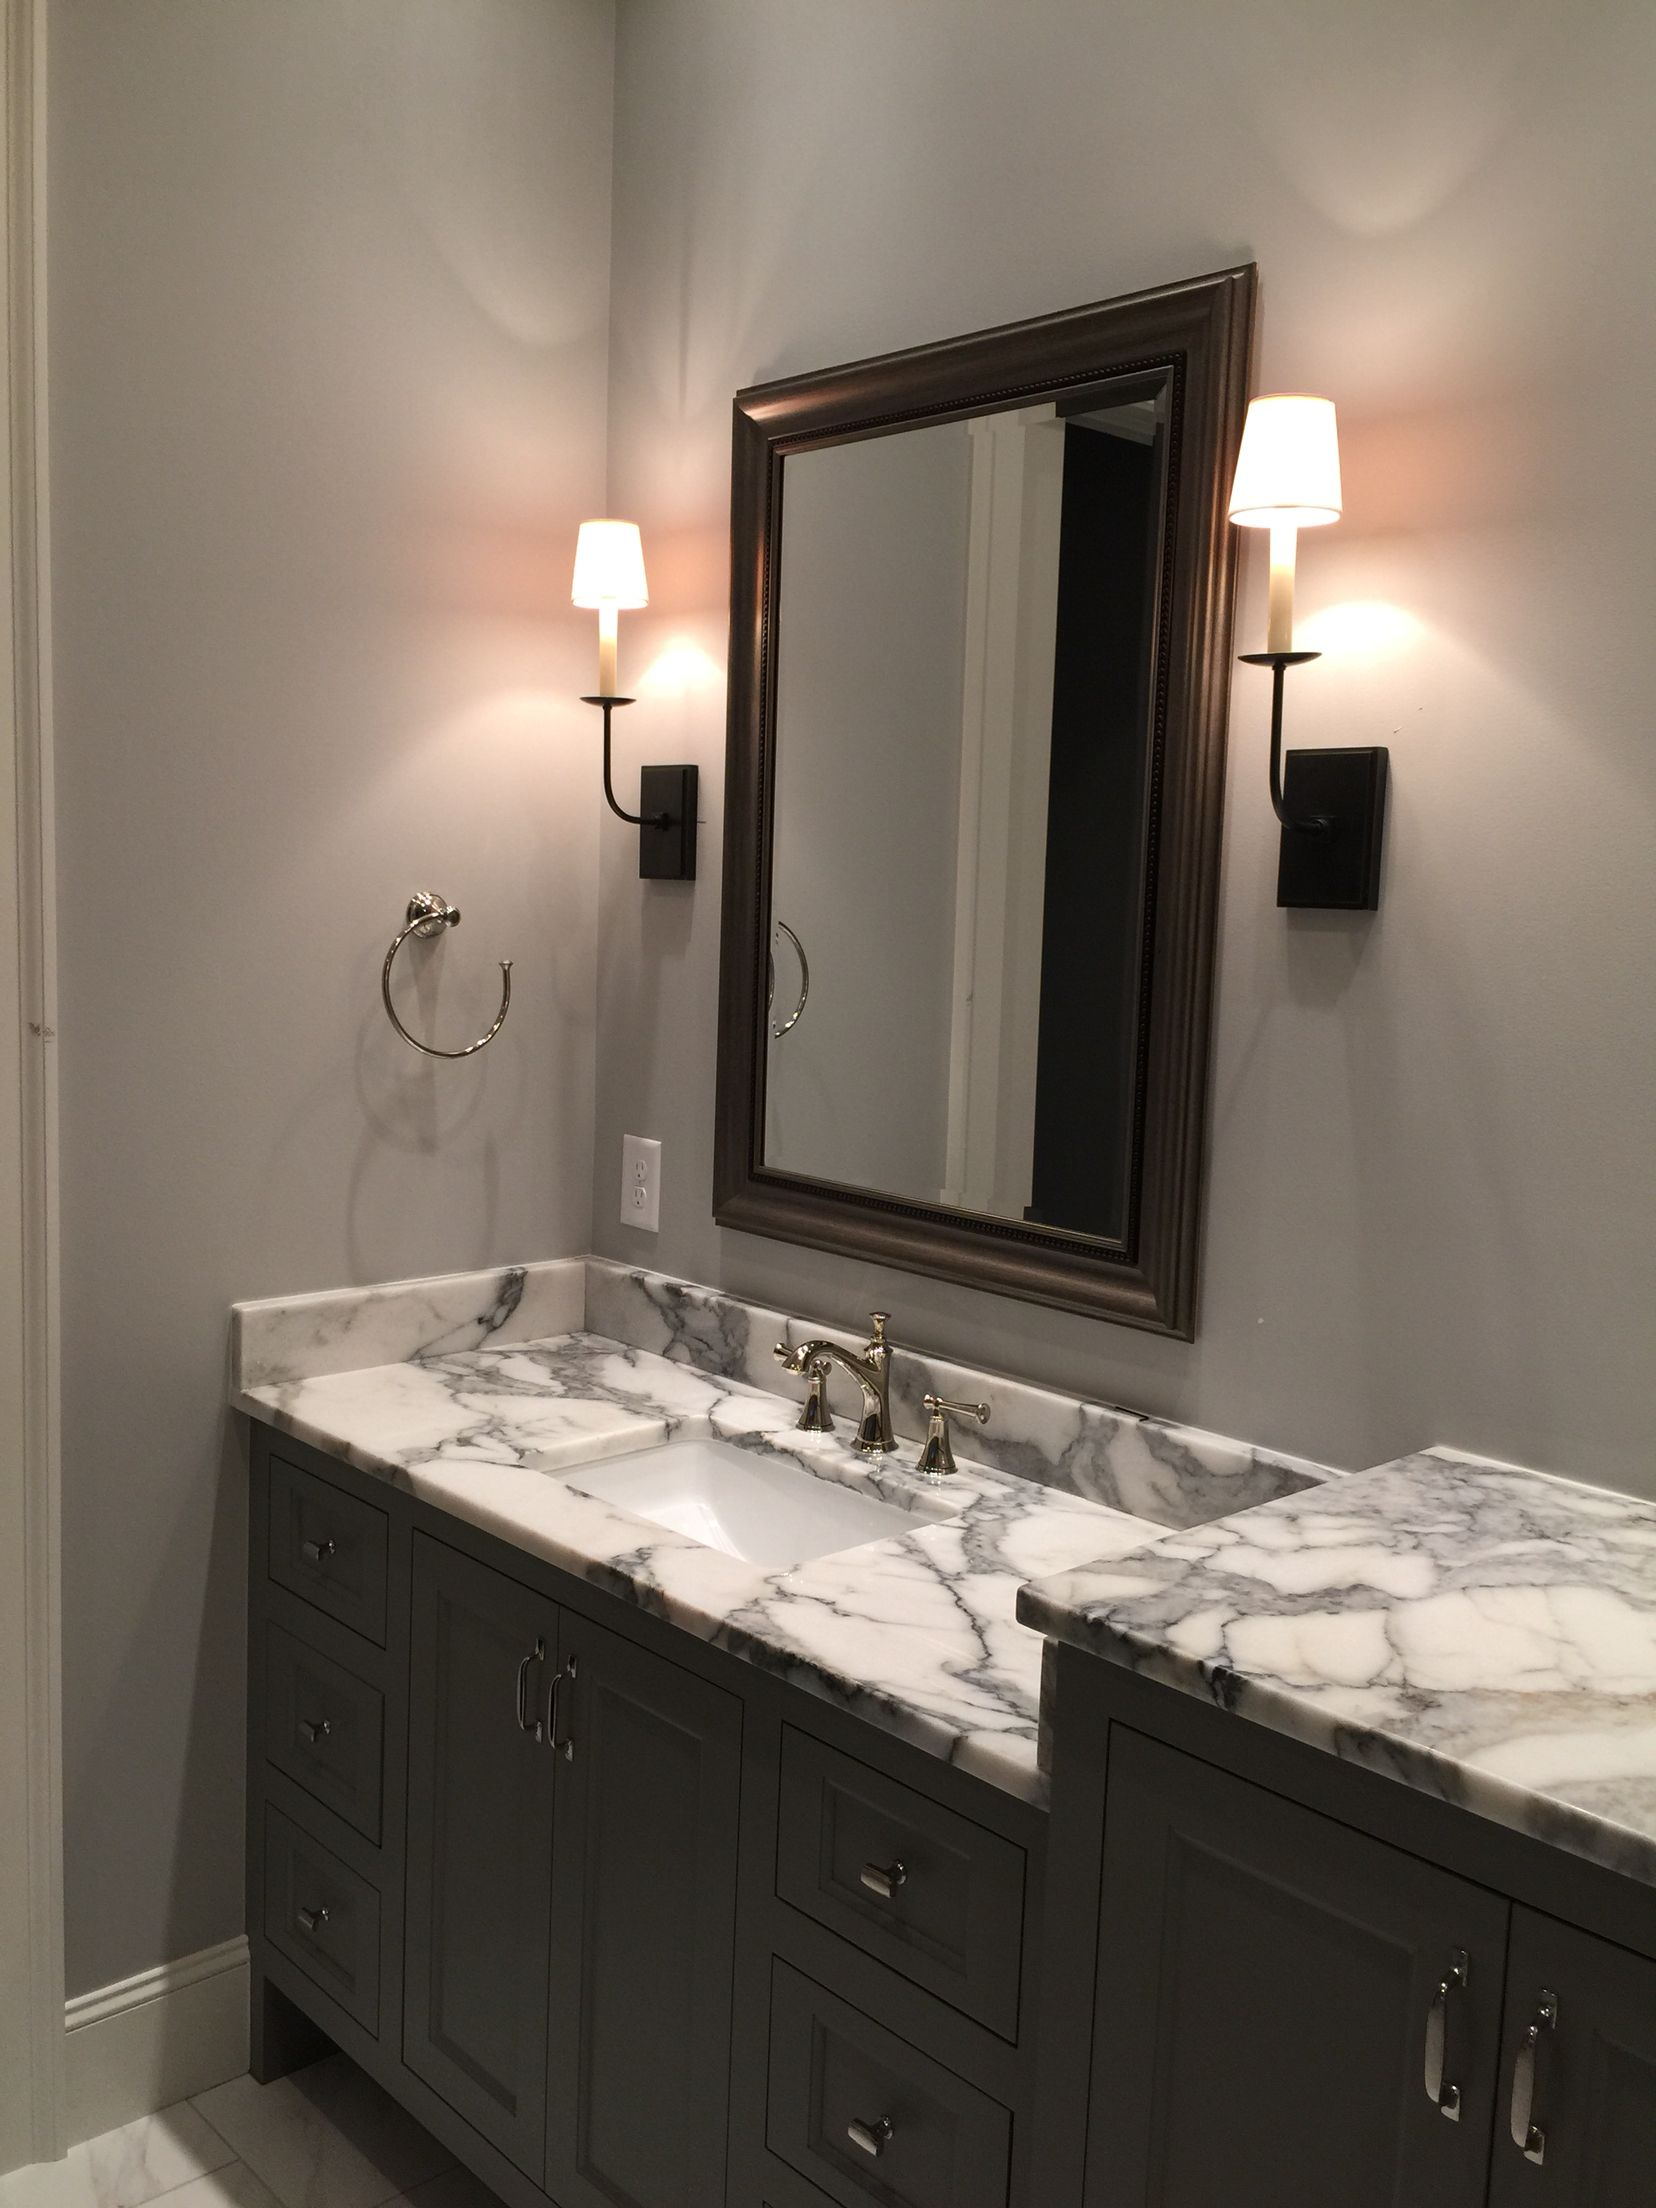 Sherwin Williams Dovetail Cabinets Knitting Needles Walls Ducale Marble Countertops Visual